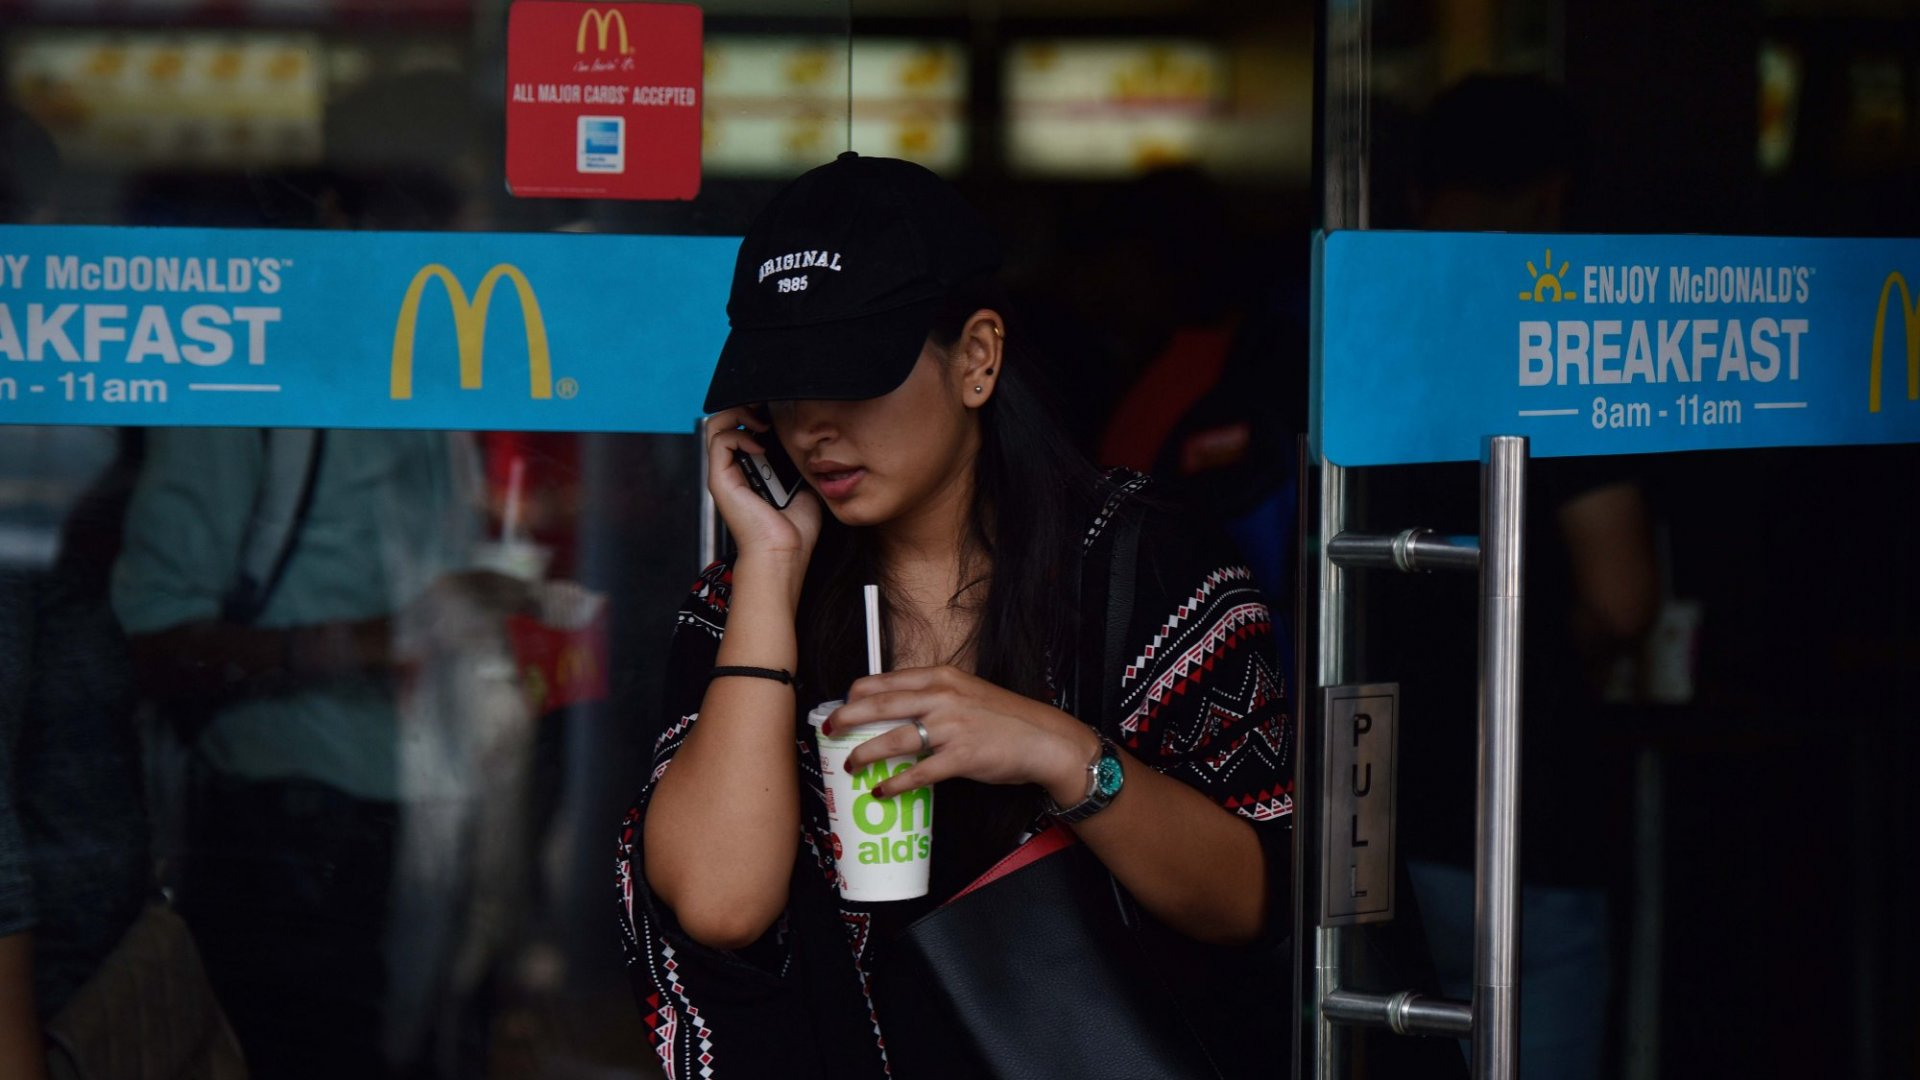 McDonald's Just Found a Shocking New Way To Make Money (This Could Really Change Everything)